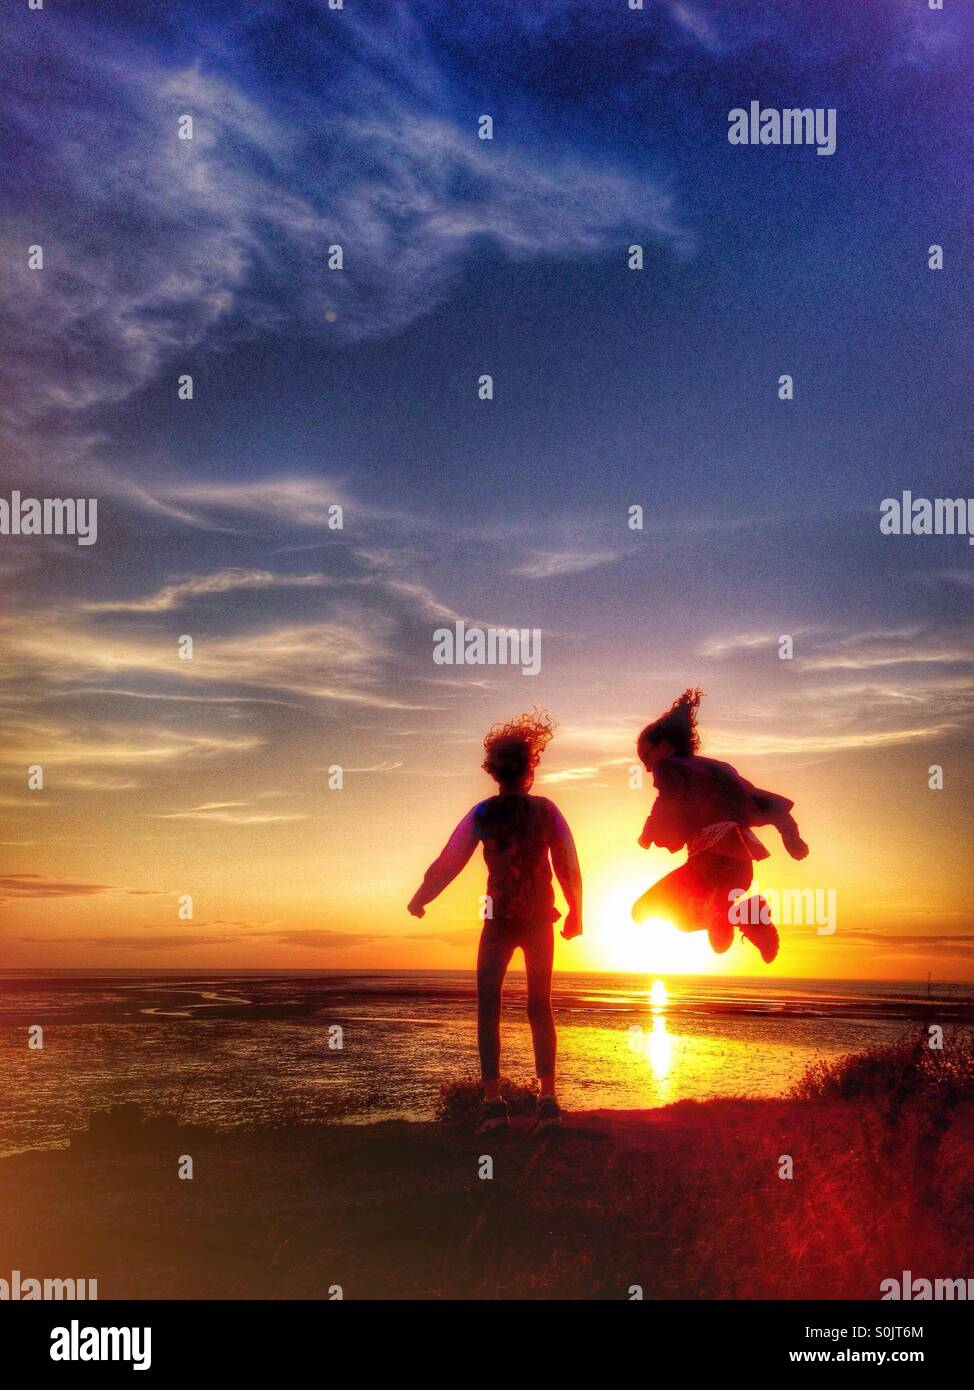 Two young girls having fun jumping in front of the setting sun - Stock Image